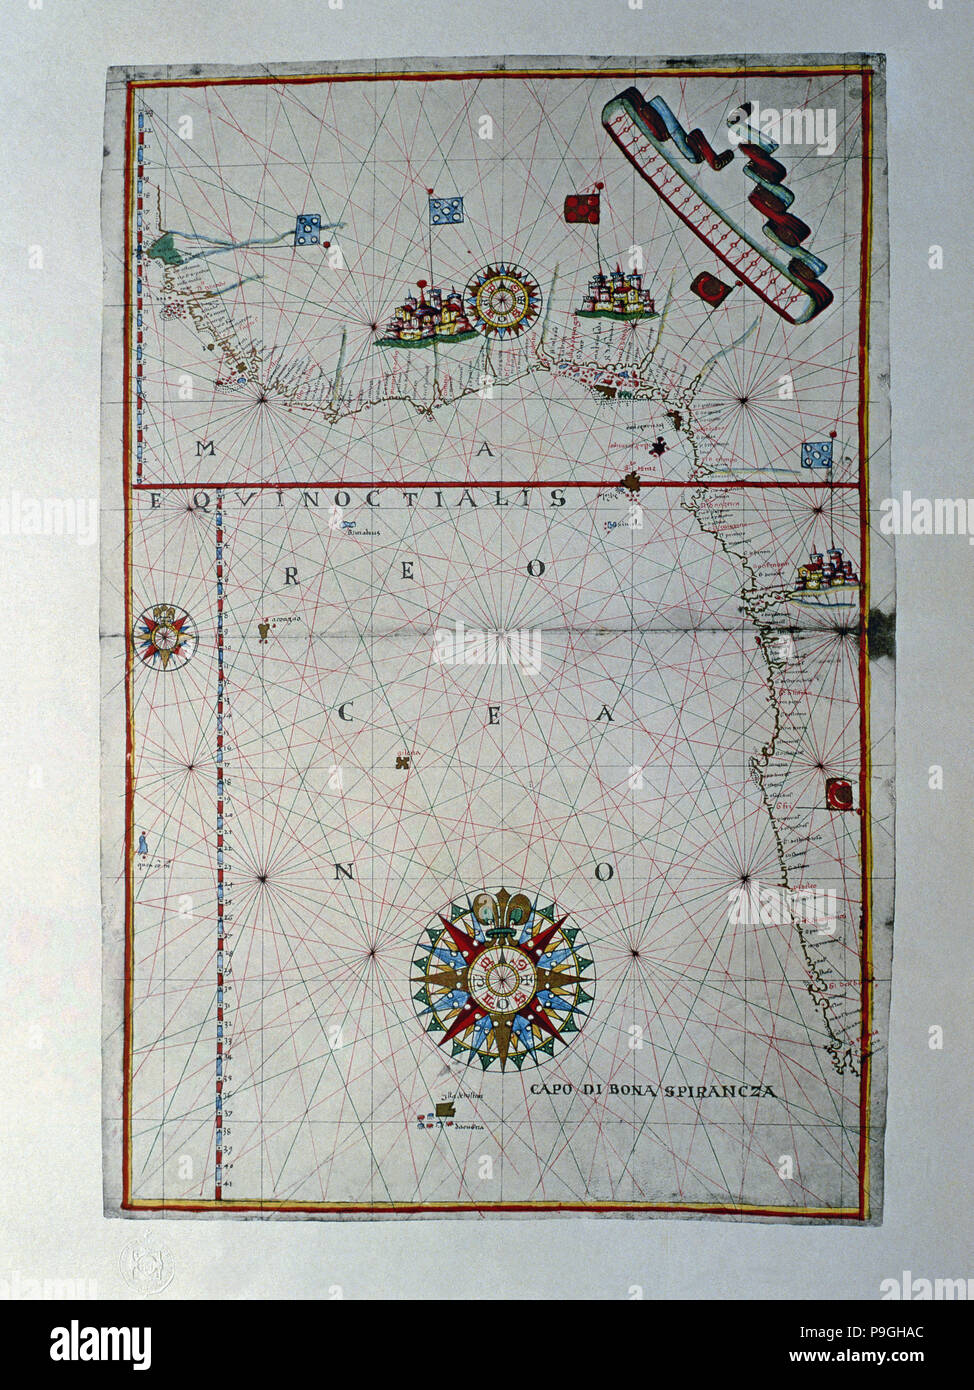 Atlas of Joan Martines, Messina, 1582. Portulan chart of the west coast of Africa, from the Gulf … Stock Photo